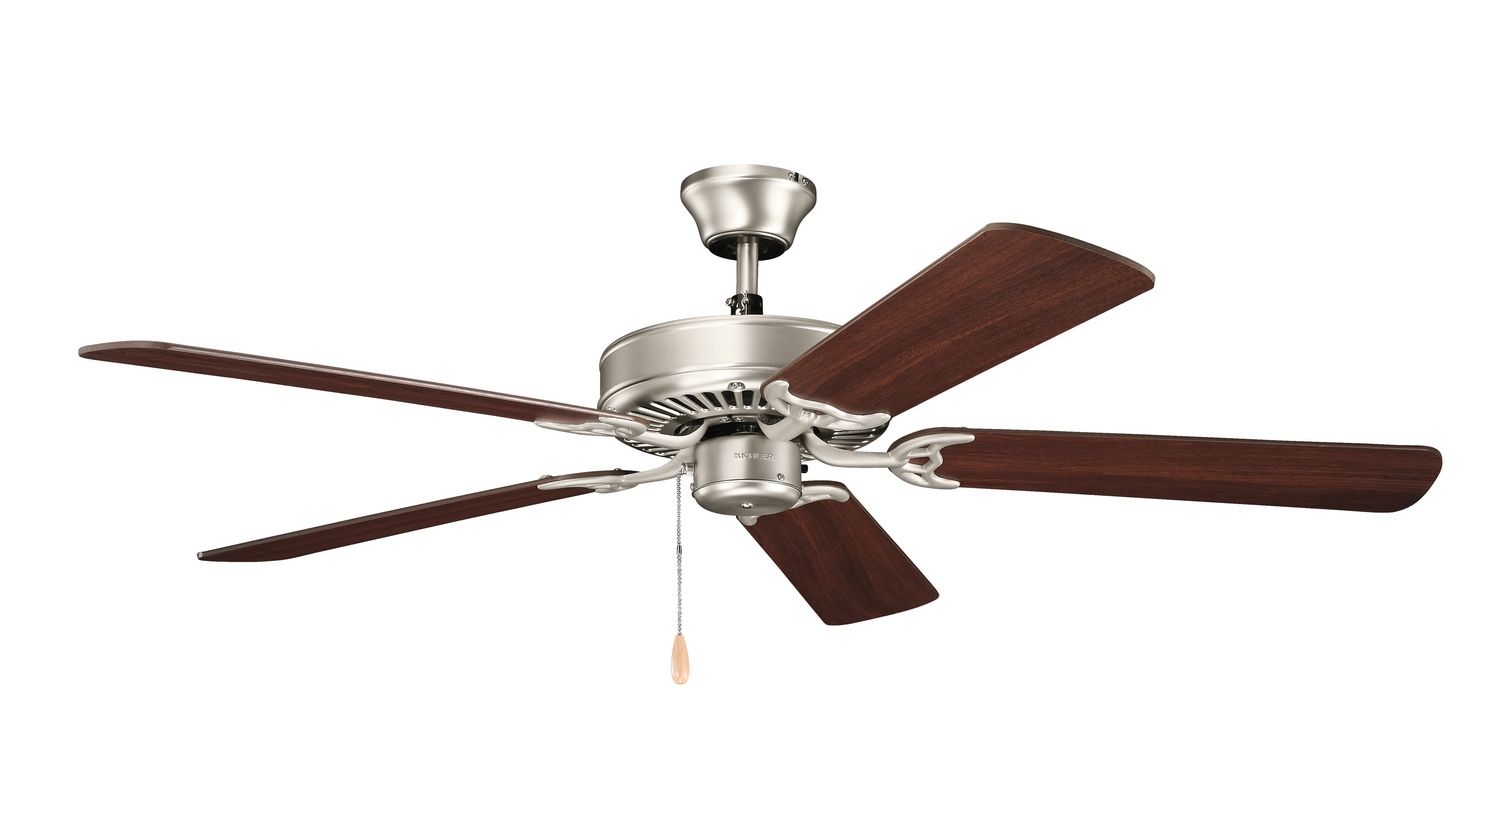 52 inchCeiling Fan from the Basics collection by Kichler 404NI7